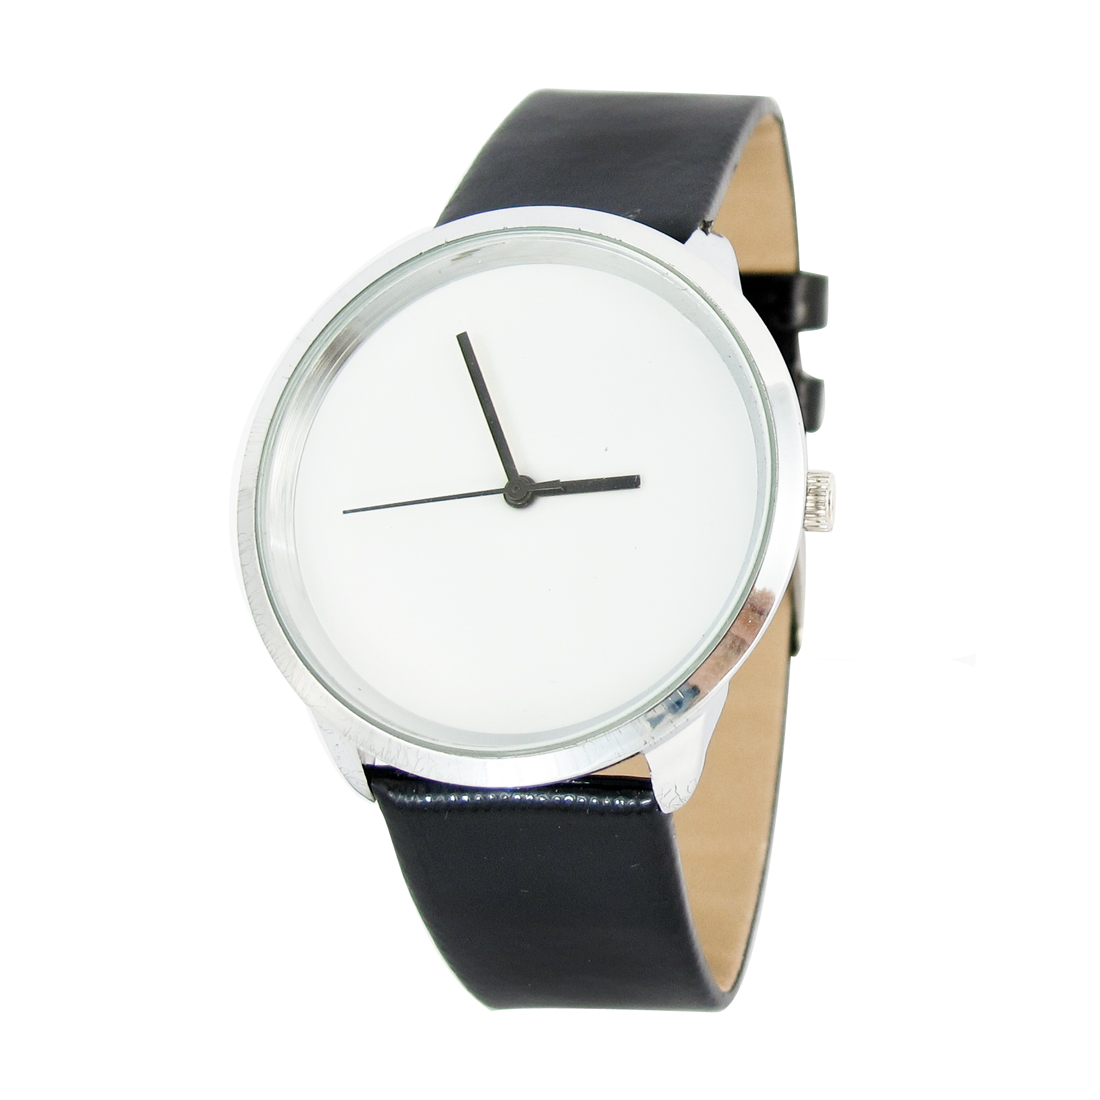 Portable Woman Single Prong Buckle Quartz Three Hands Wrist Watch White Black